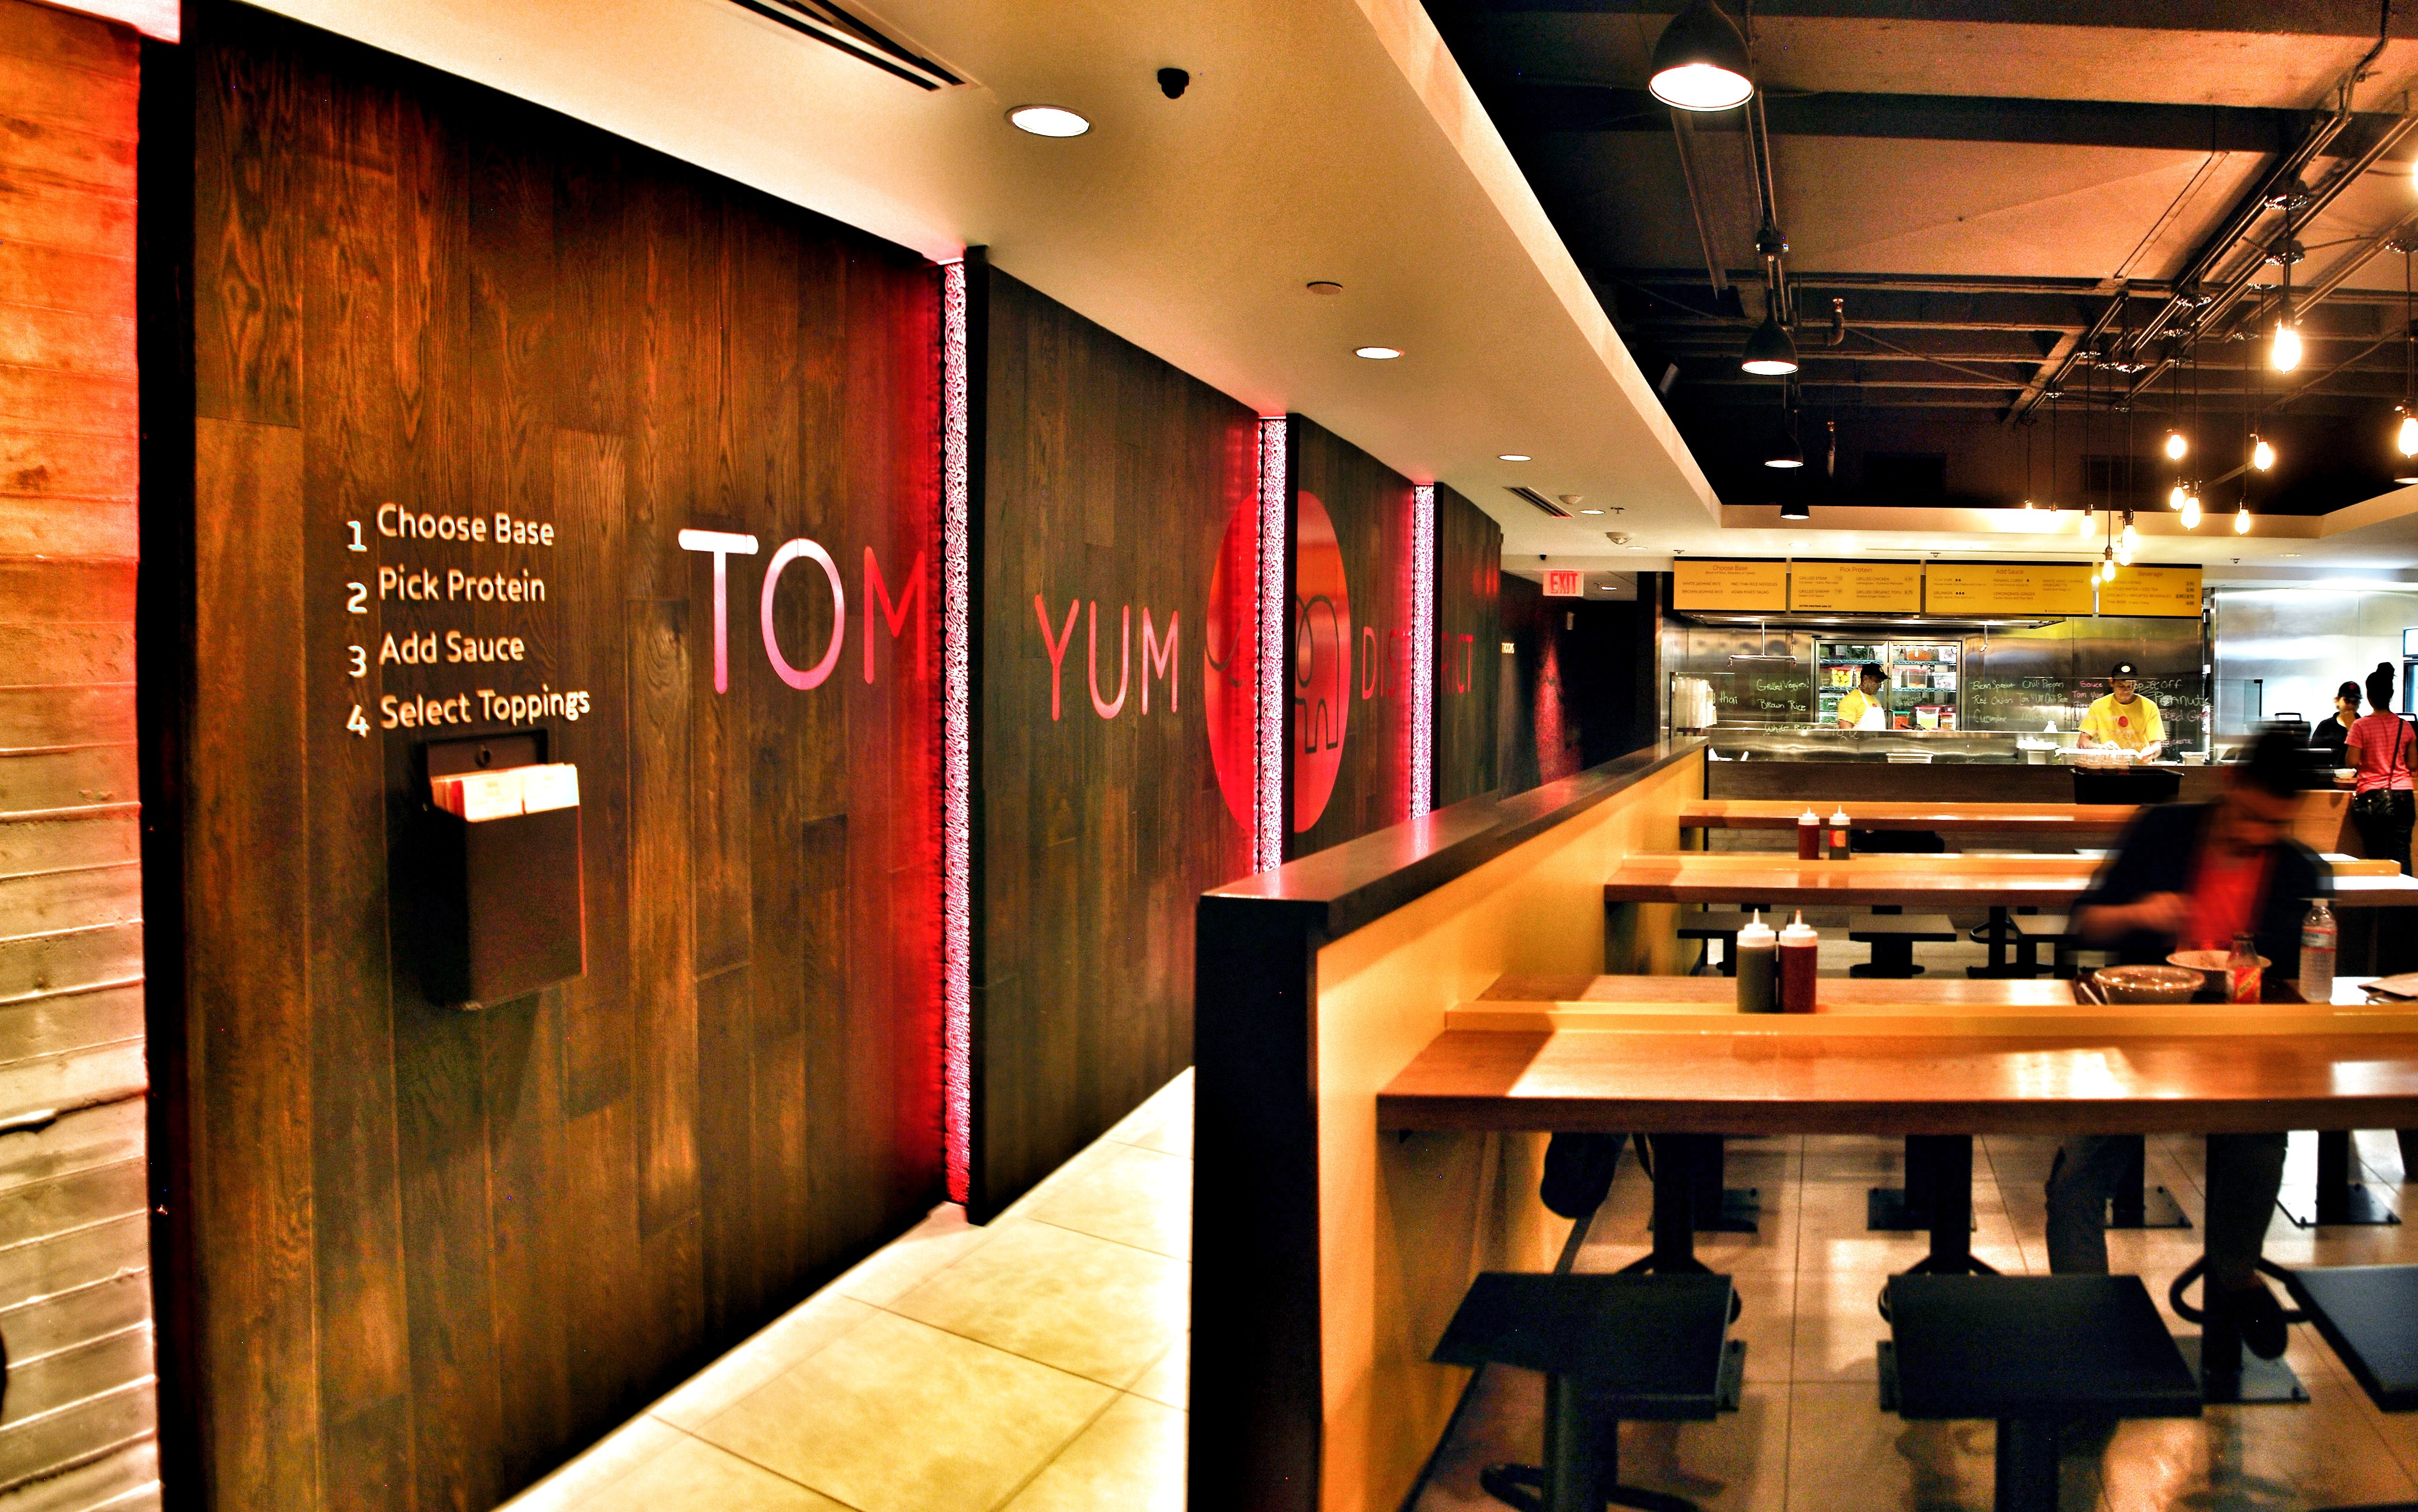 wendys launches re design inspired by mexican chain days after boss praised rival as new fast food king interiors